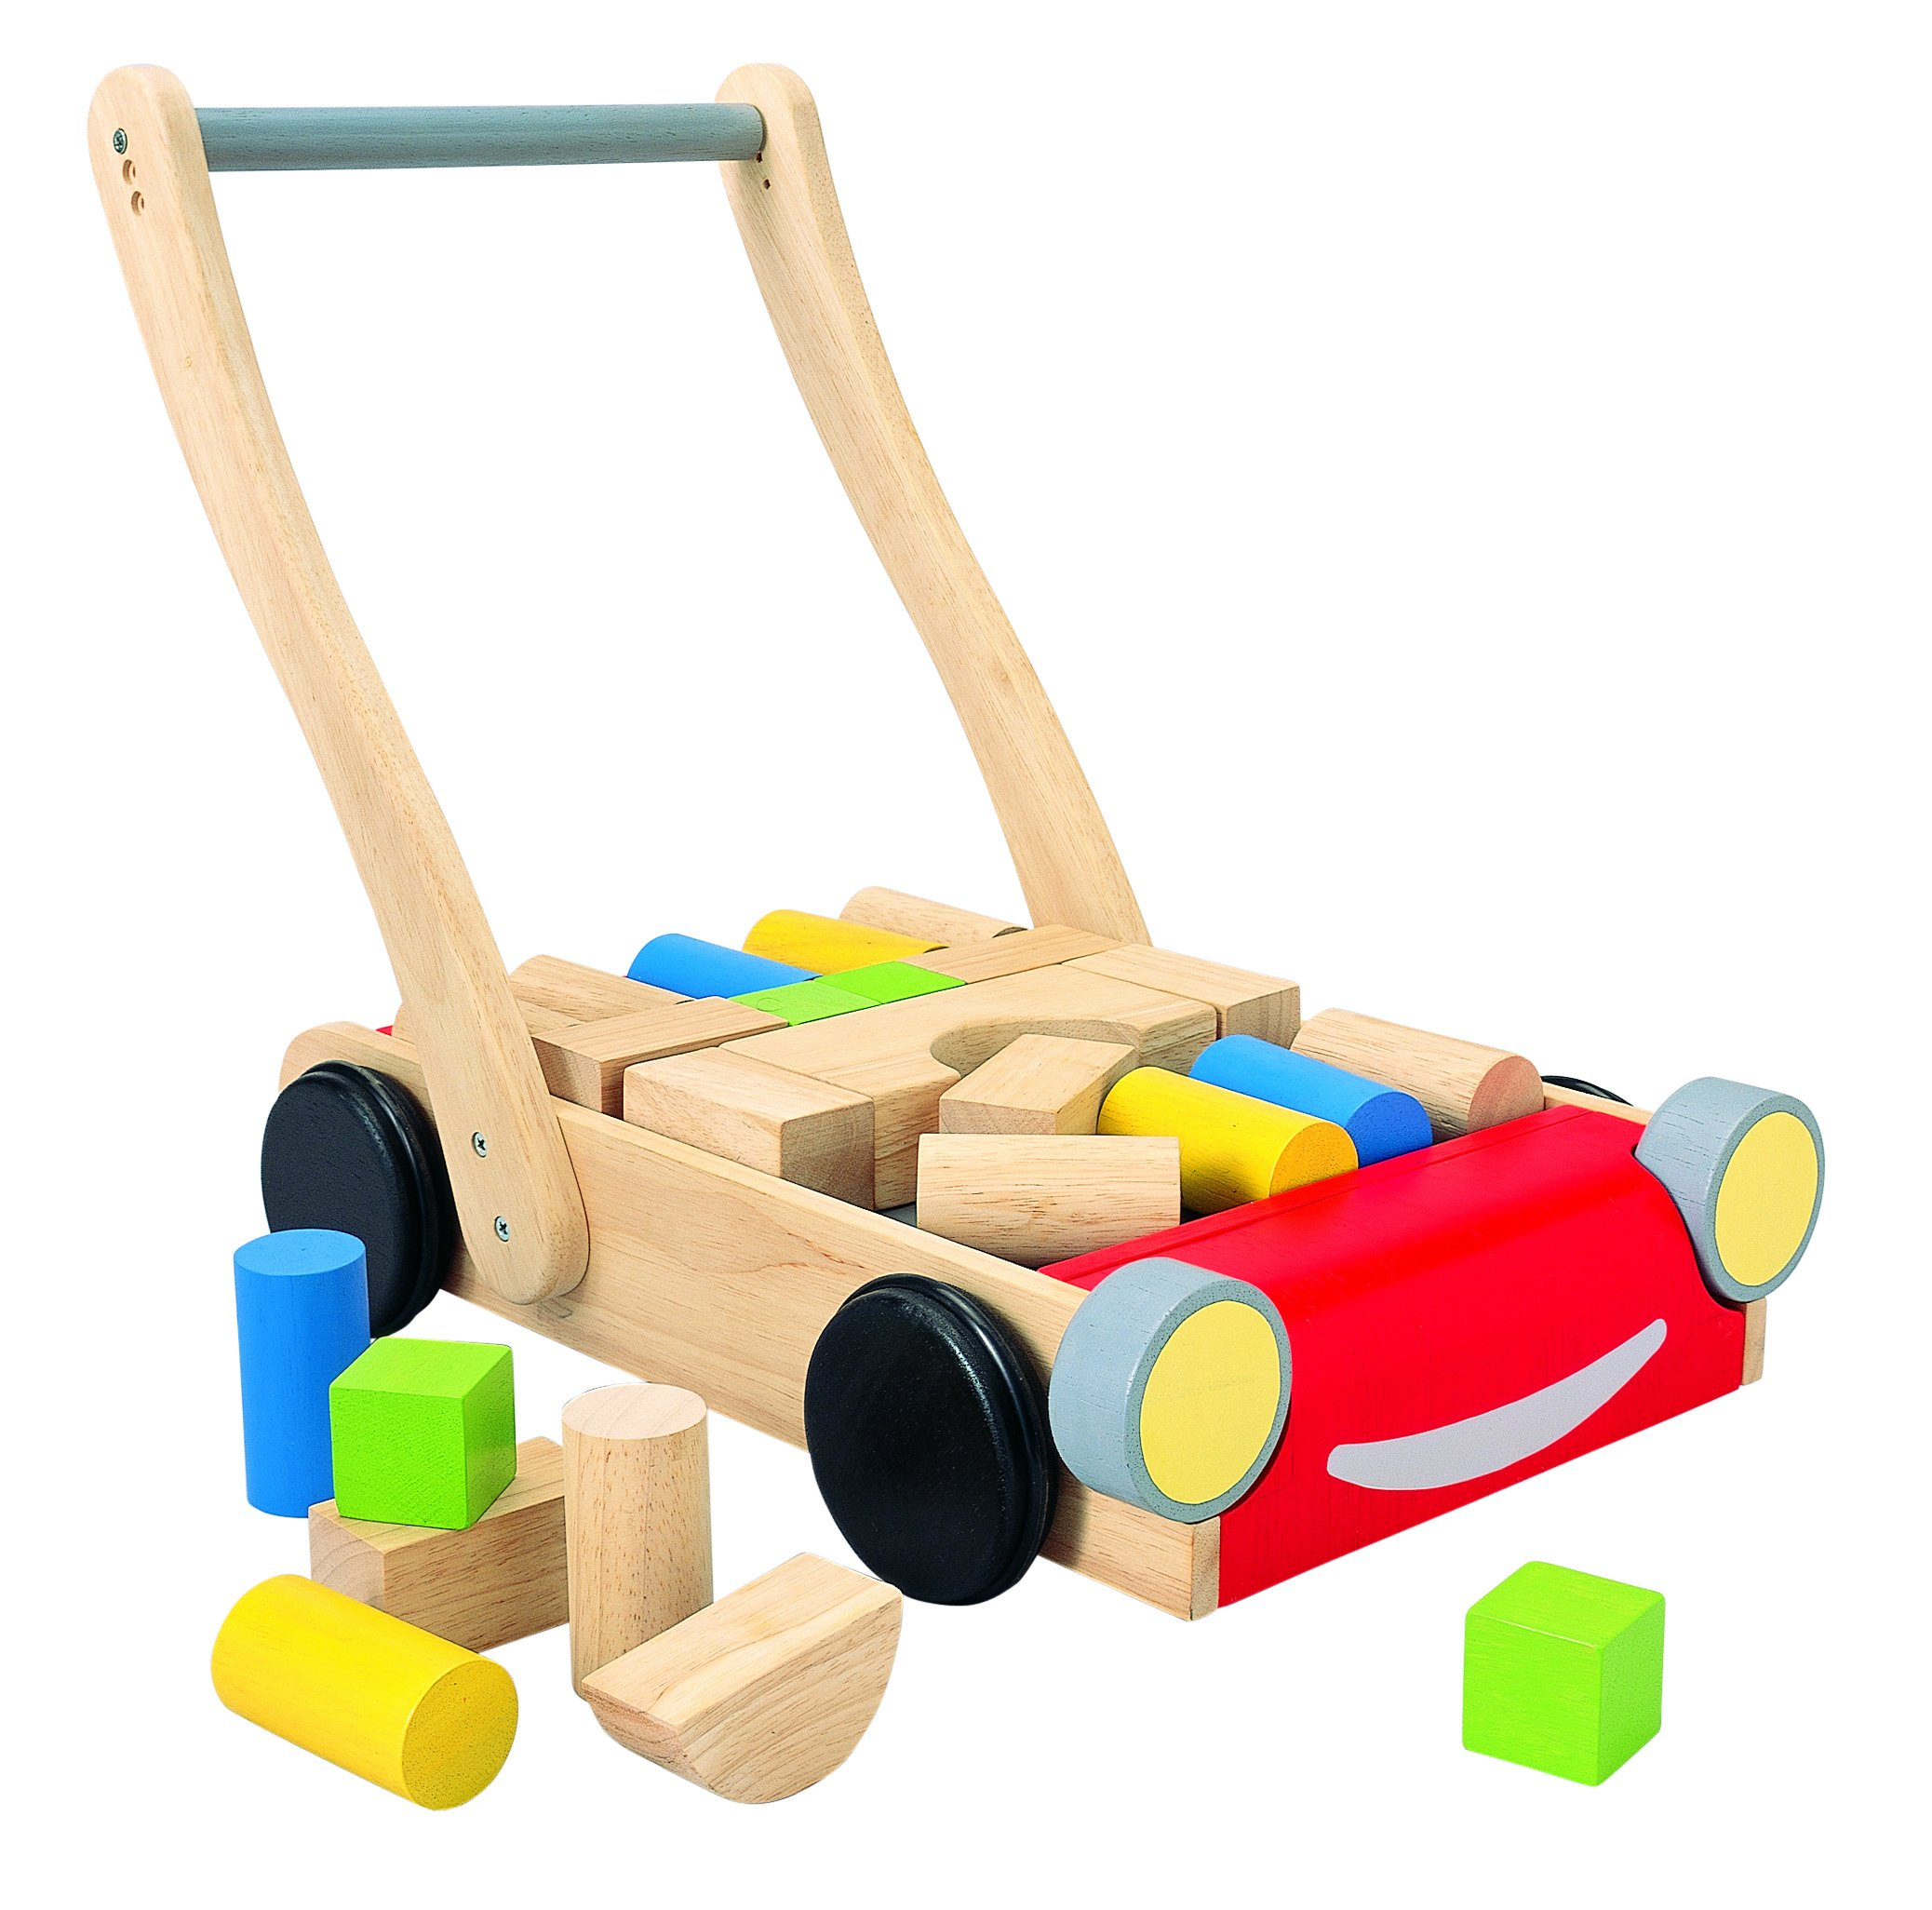 Plan Toy Baby Walker by PlanToys (Image #1)